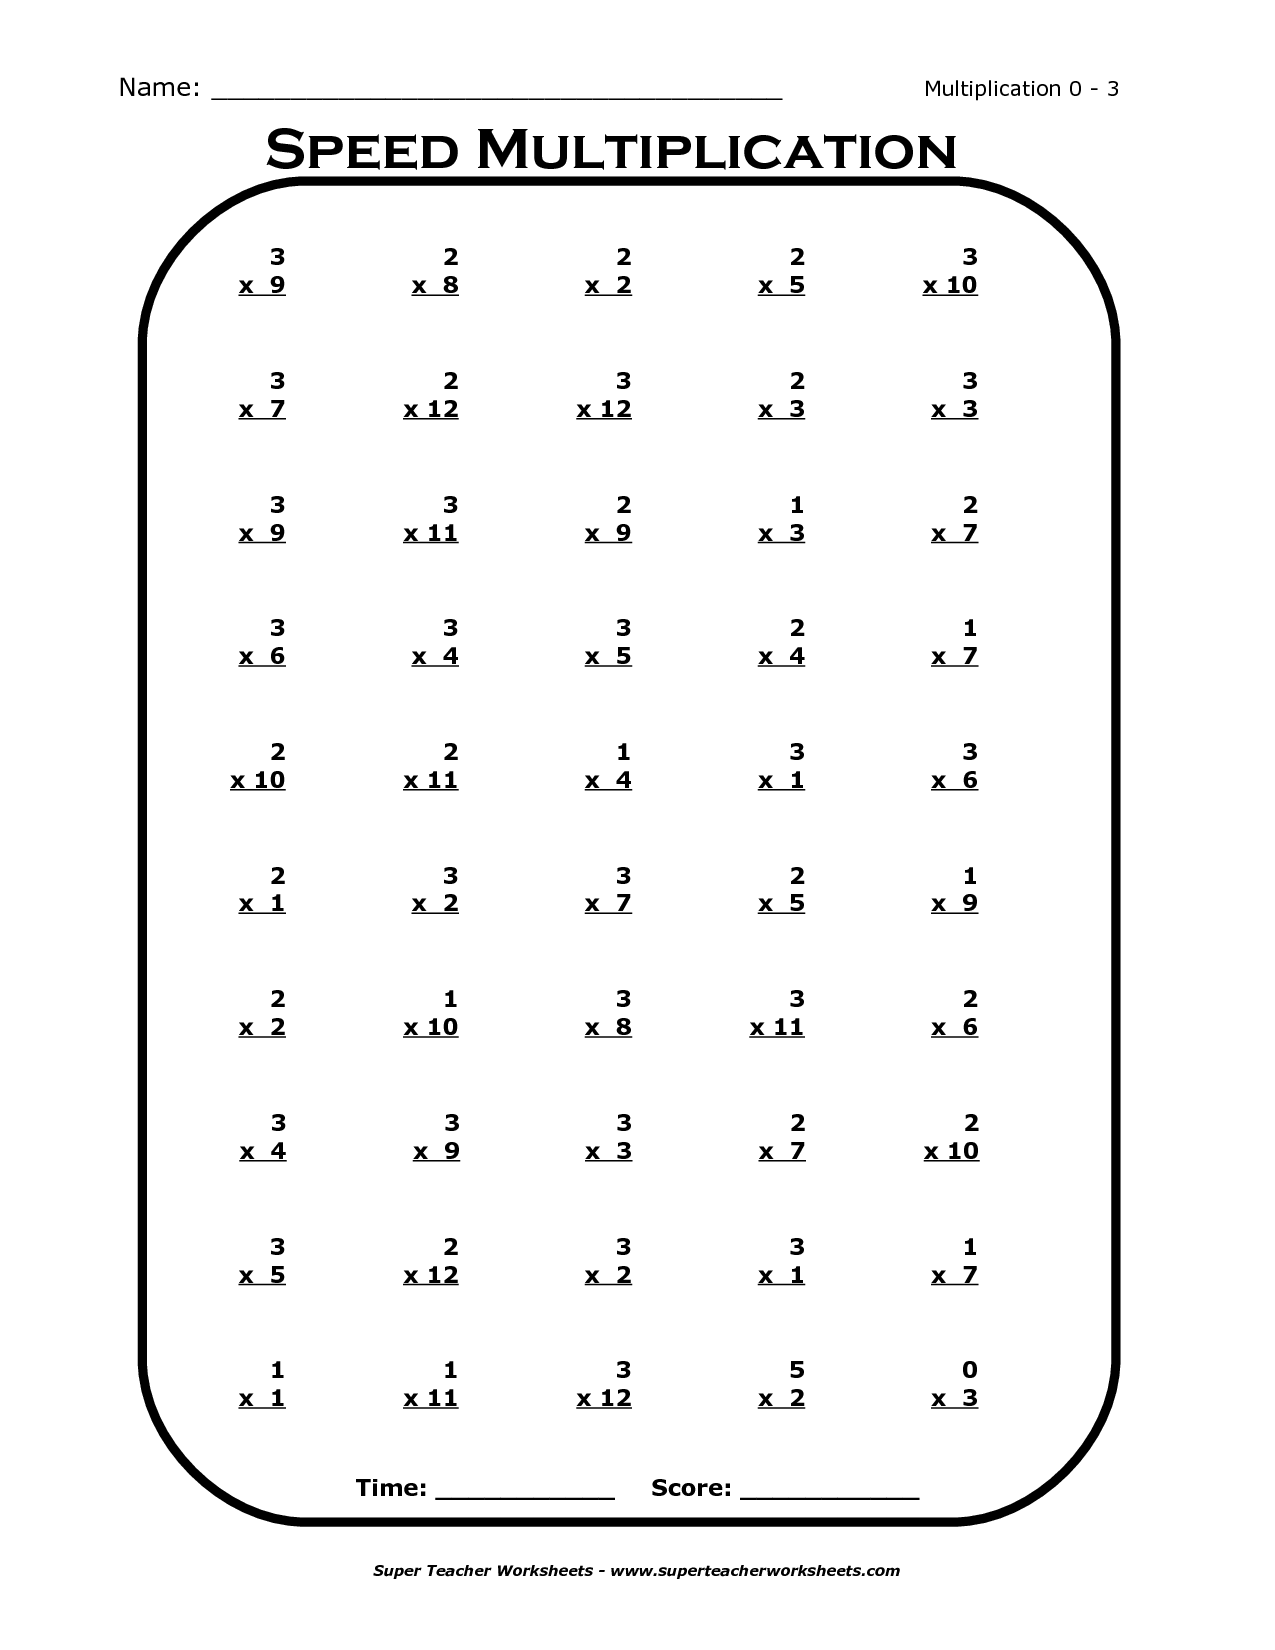 Worksheet Simple Multiplication Test times tables worksheets 3rd grade math multiplication basic table worksheets